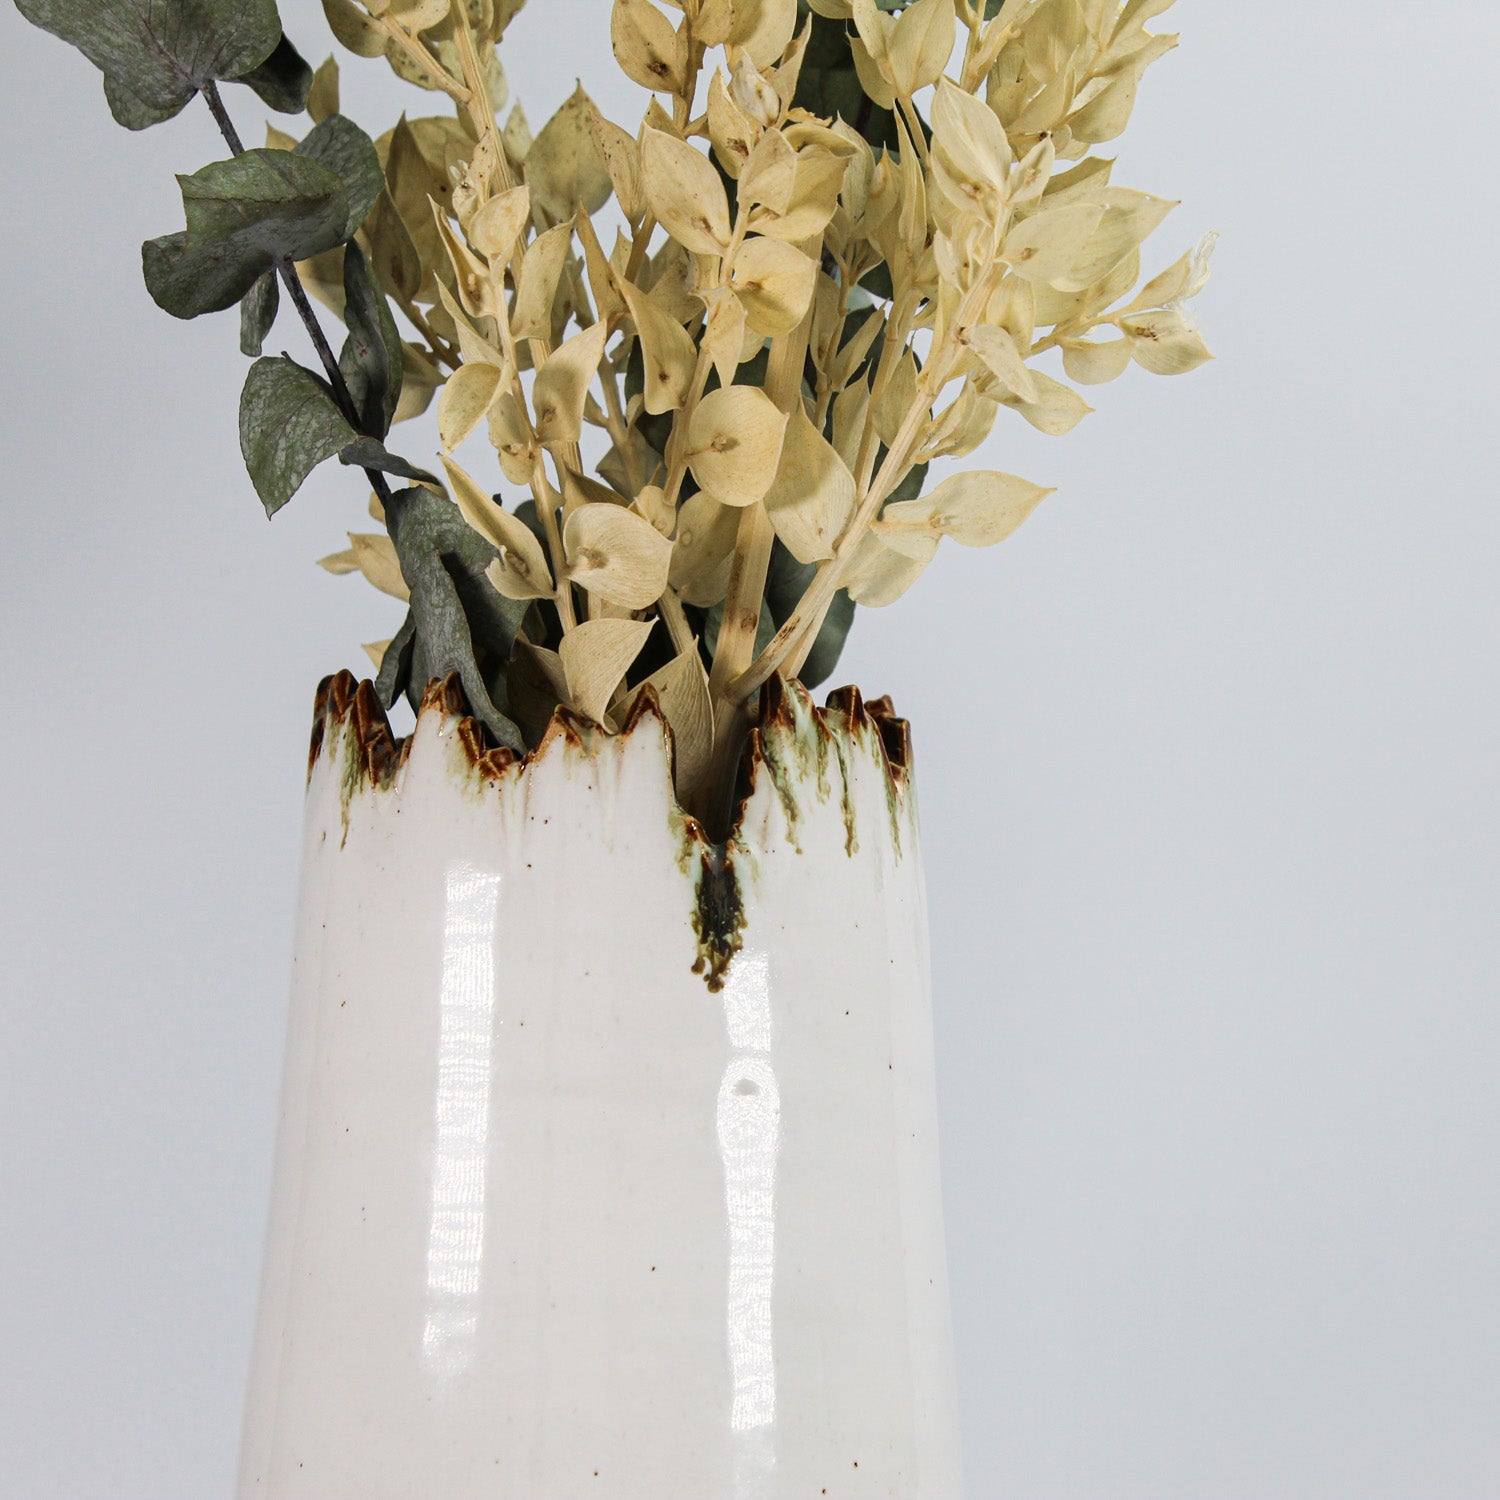 Top of large stoneware white, bronze and gold vase with jagged edge.  Containing dried flowers.